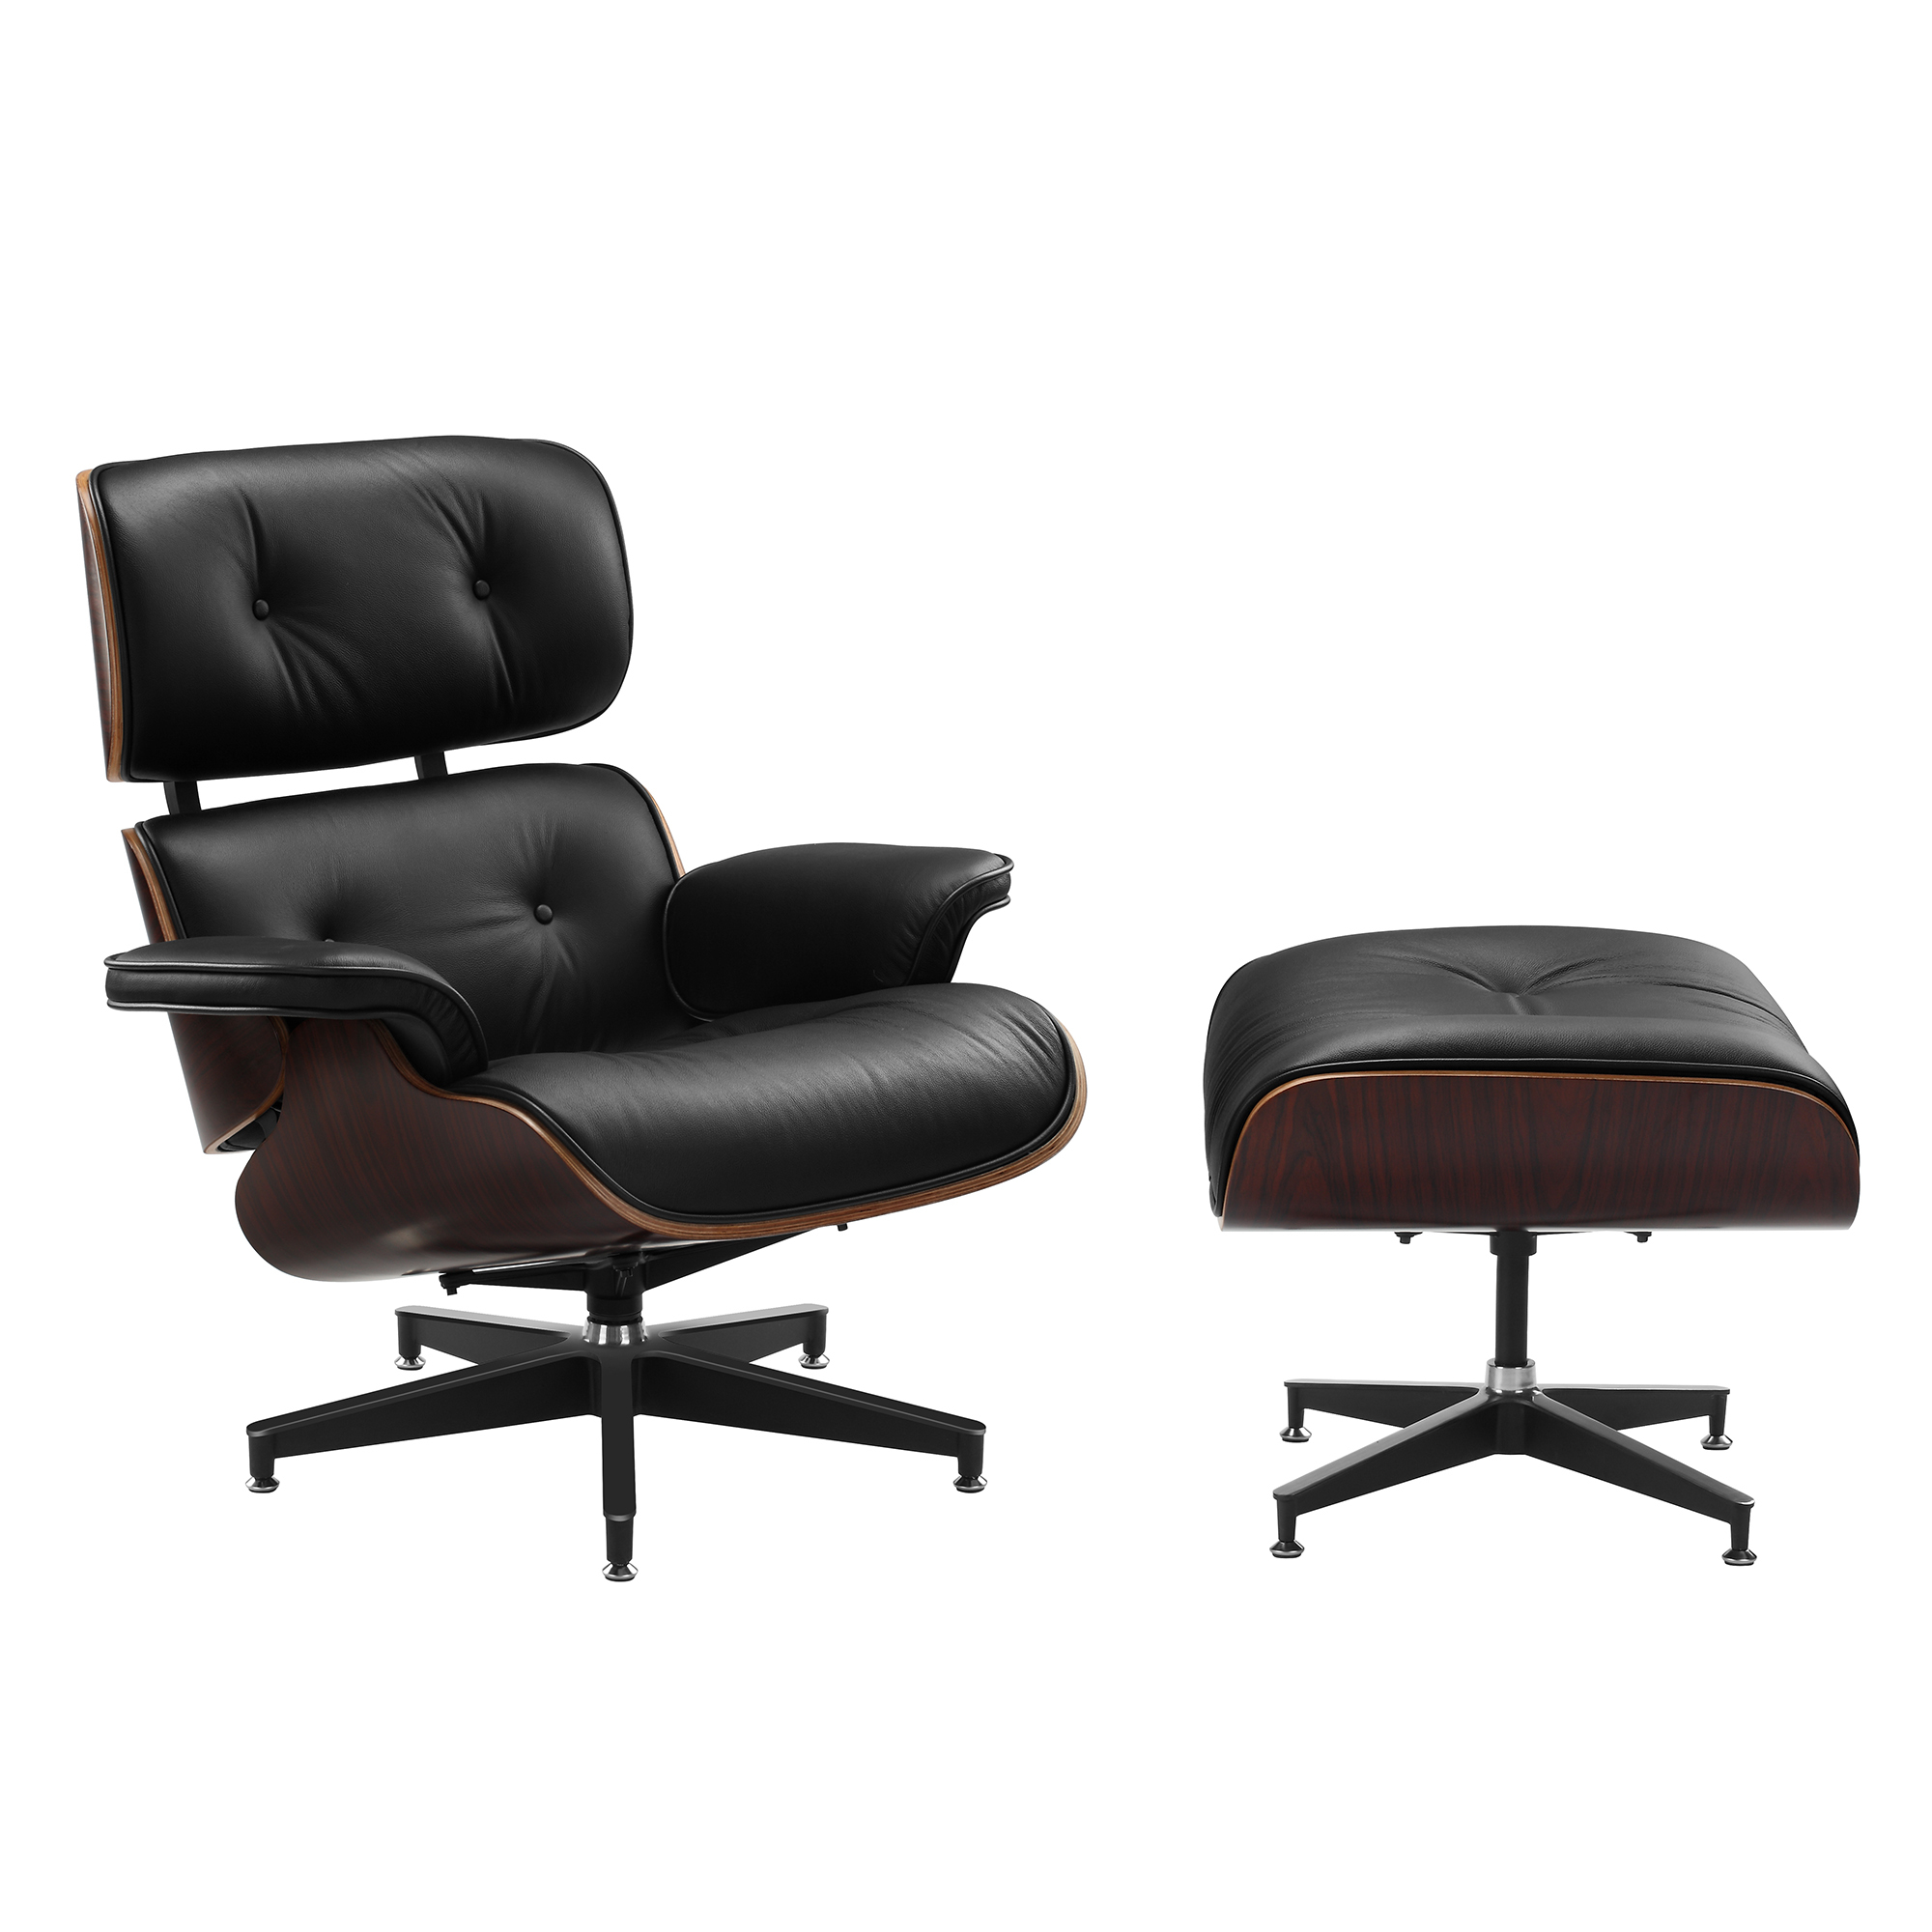 Eanes Chair Eames Premium Leather Replica Lounge Chair Ottoman